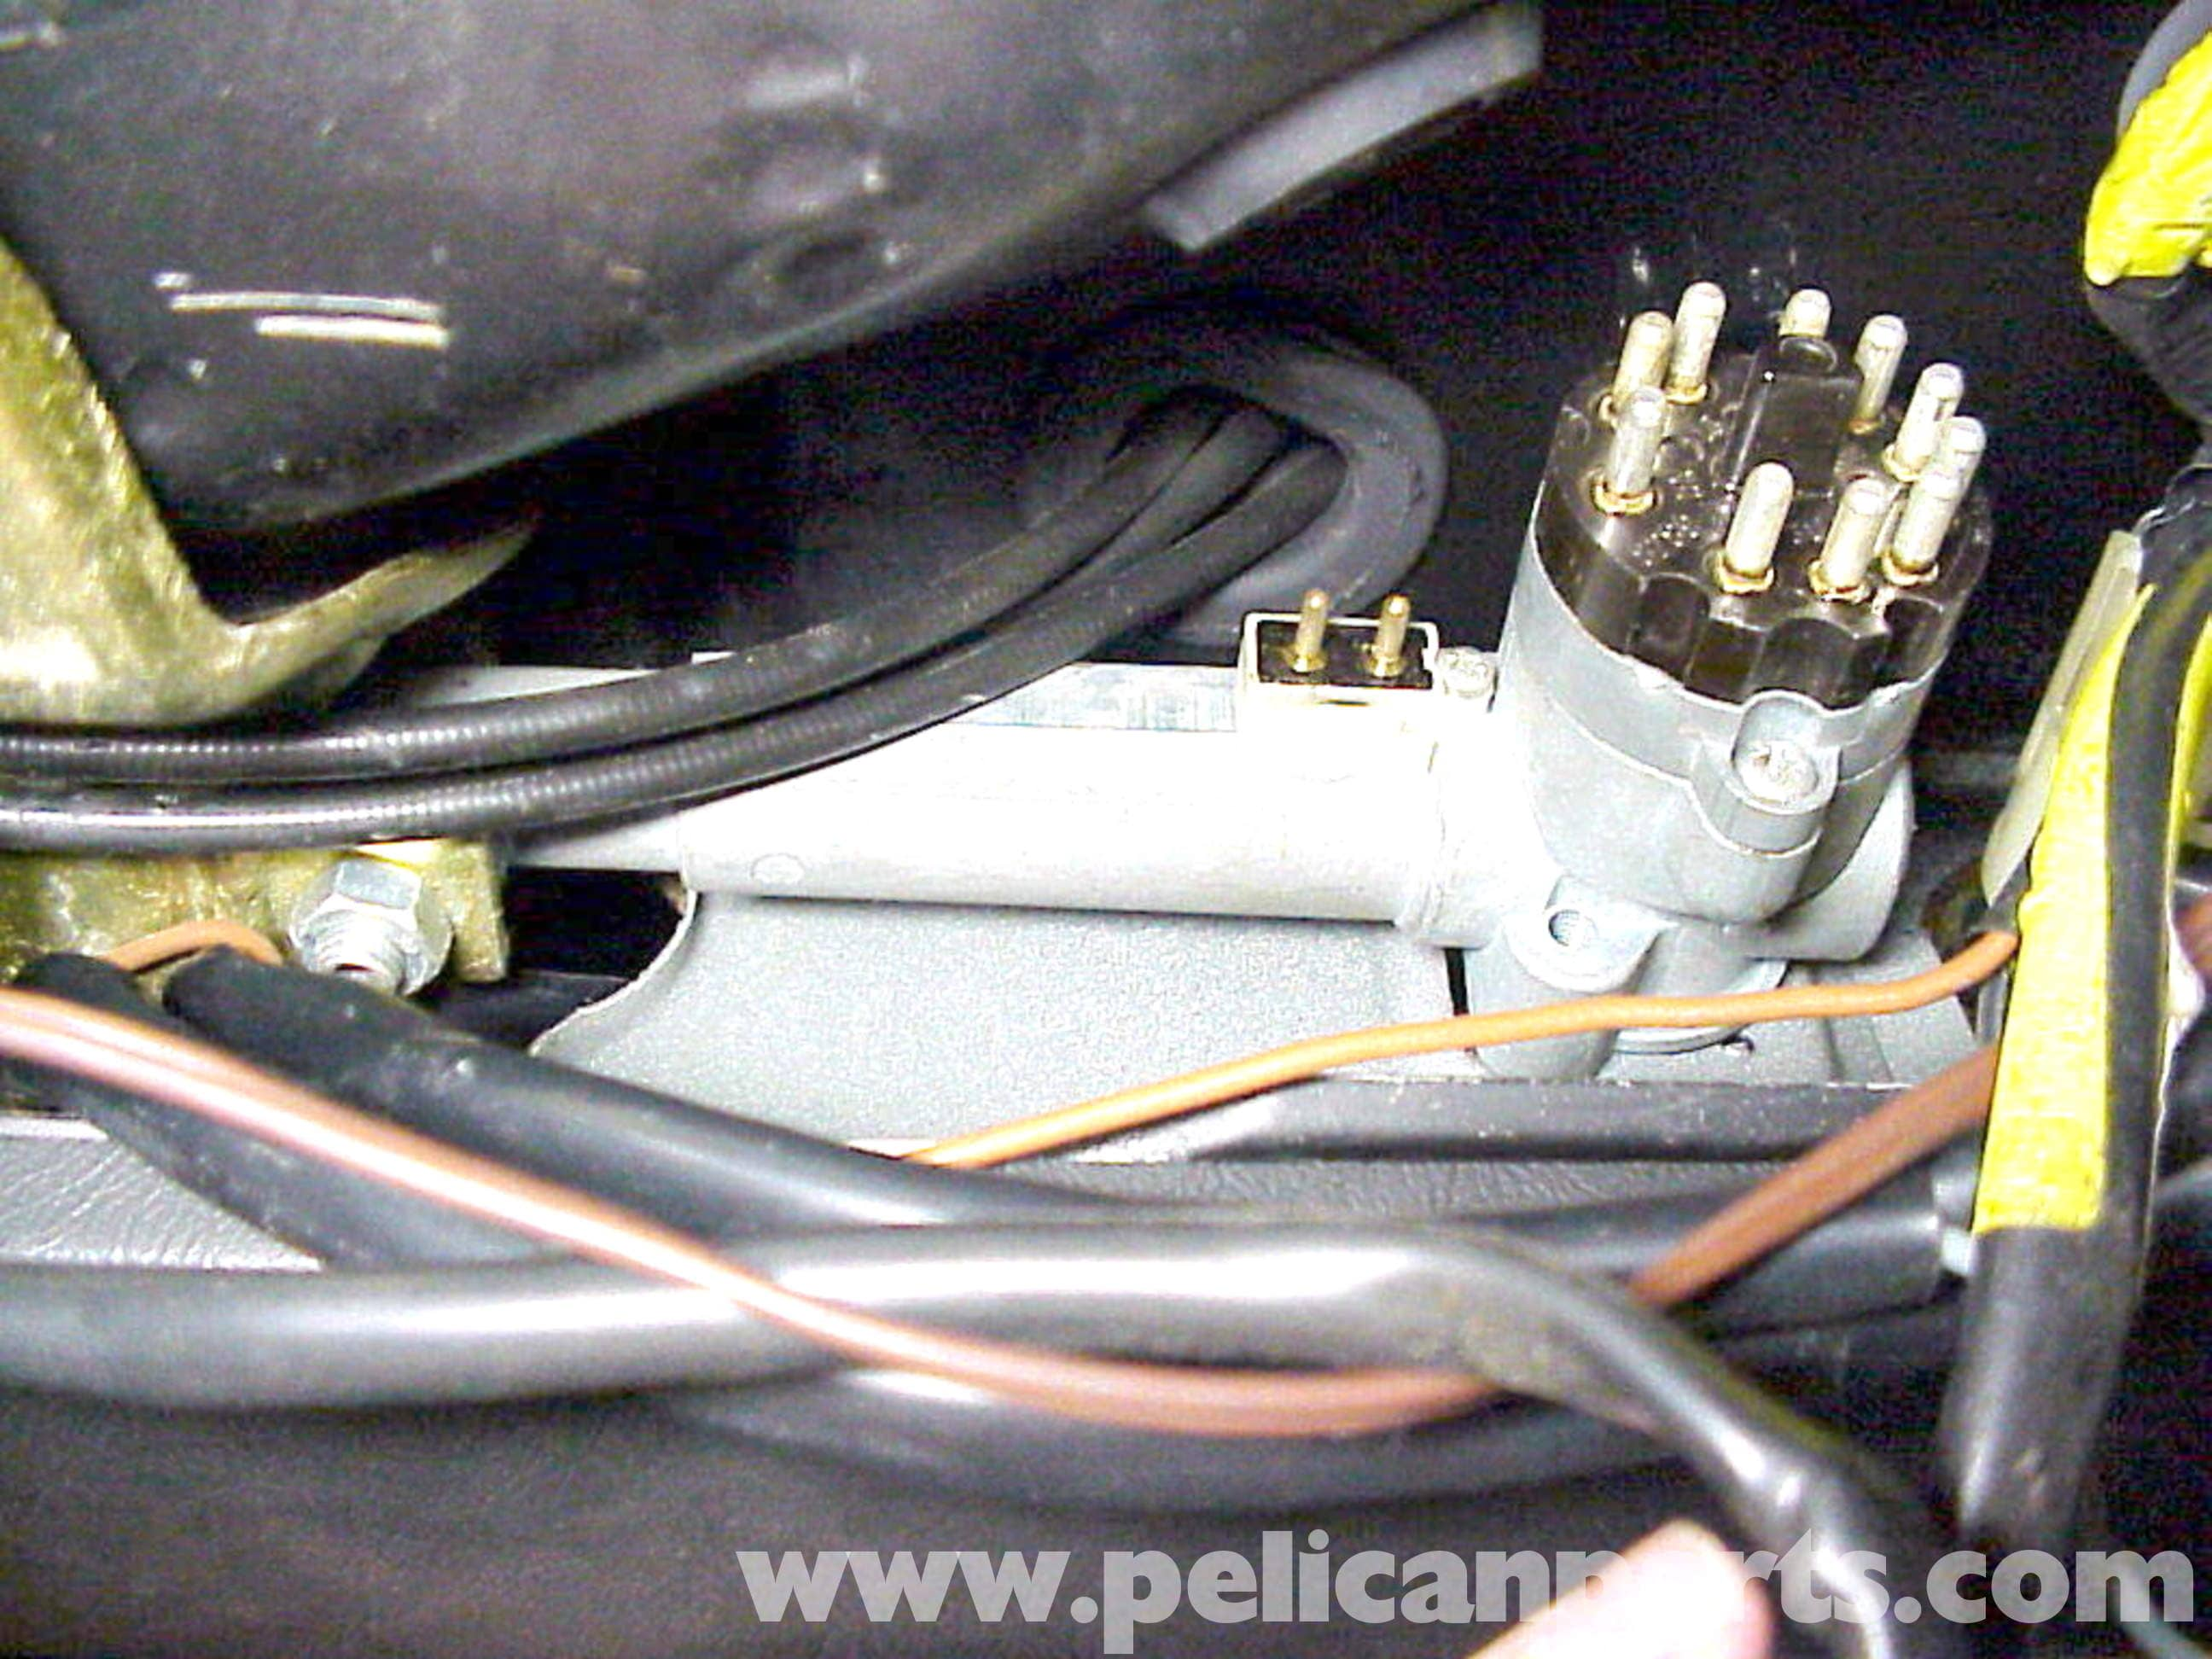 Porsche 911 Ignition Switch Replacement | 911 (1965-89) - 930 Turbo on corvette schematics diagrams, porsche parts diagrams, banquet style meeting room set up diagrams, porsche transmission, fluid power diagrams, complete streets diagrams, porsche 996 diagrams, porsche engine, porsche 914 wiring harness, porsche blueprints,